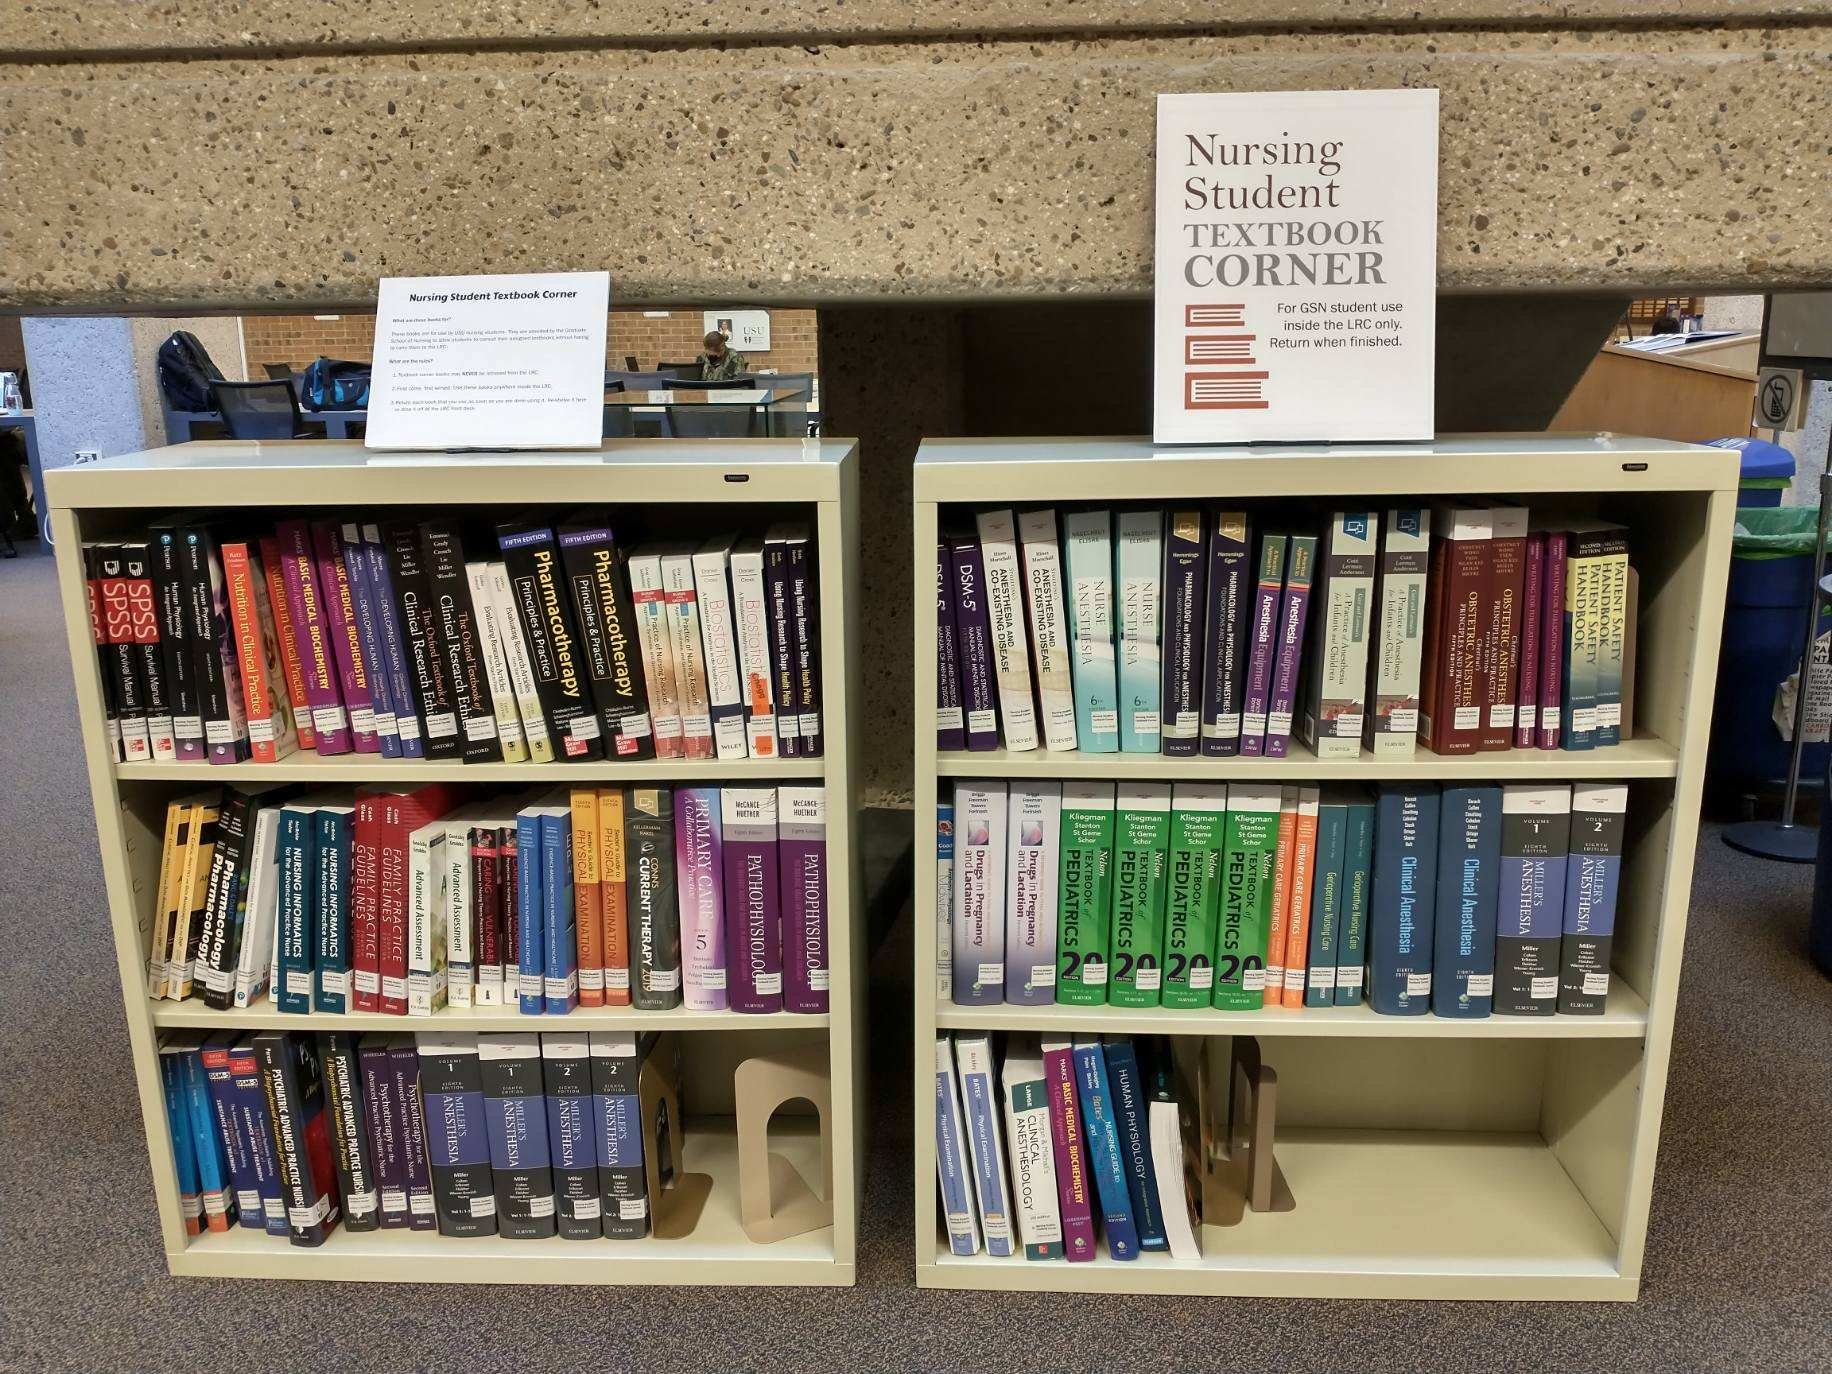 A bookshelf of textbooks for medical and nursing students.